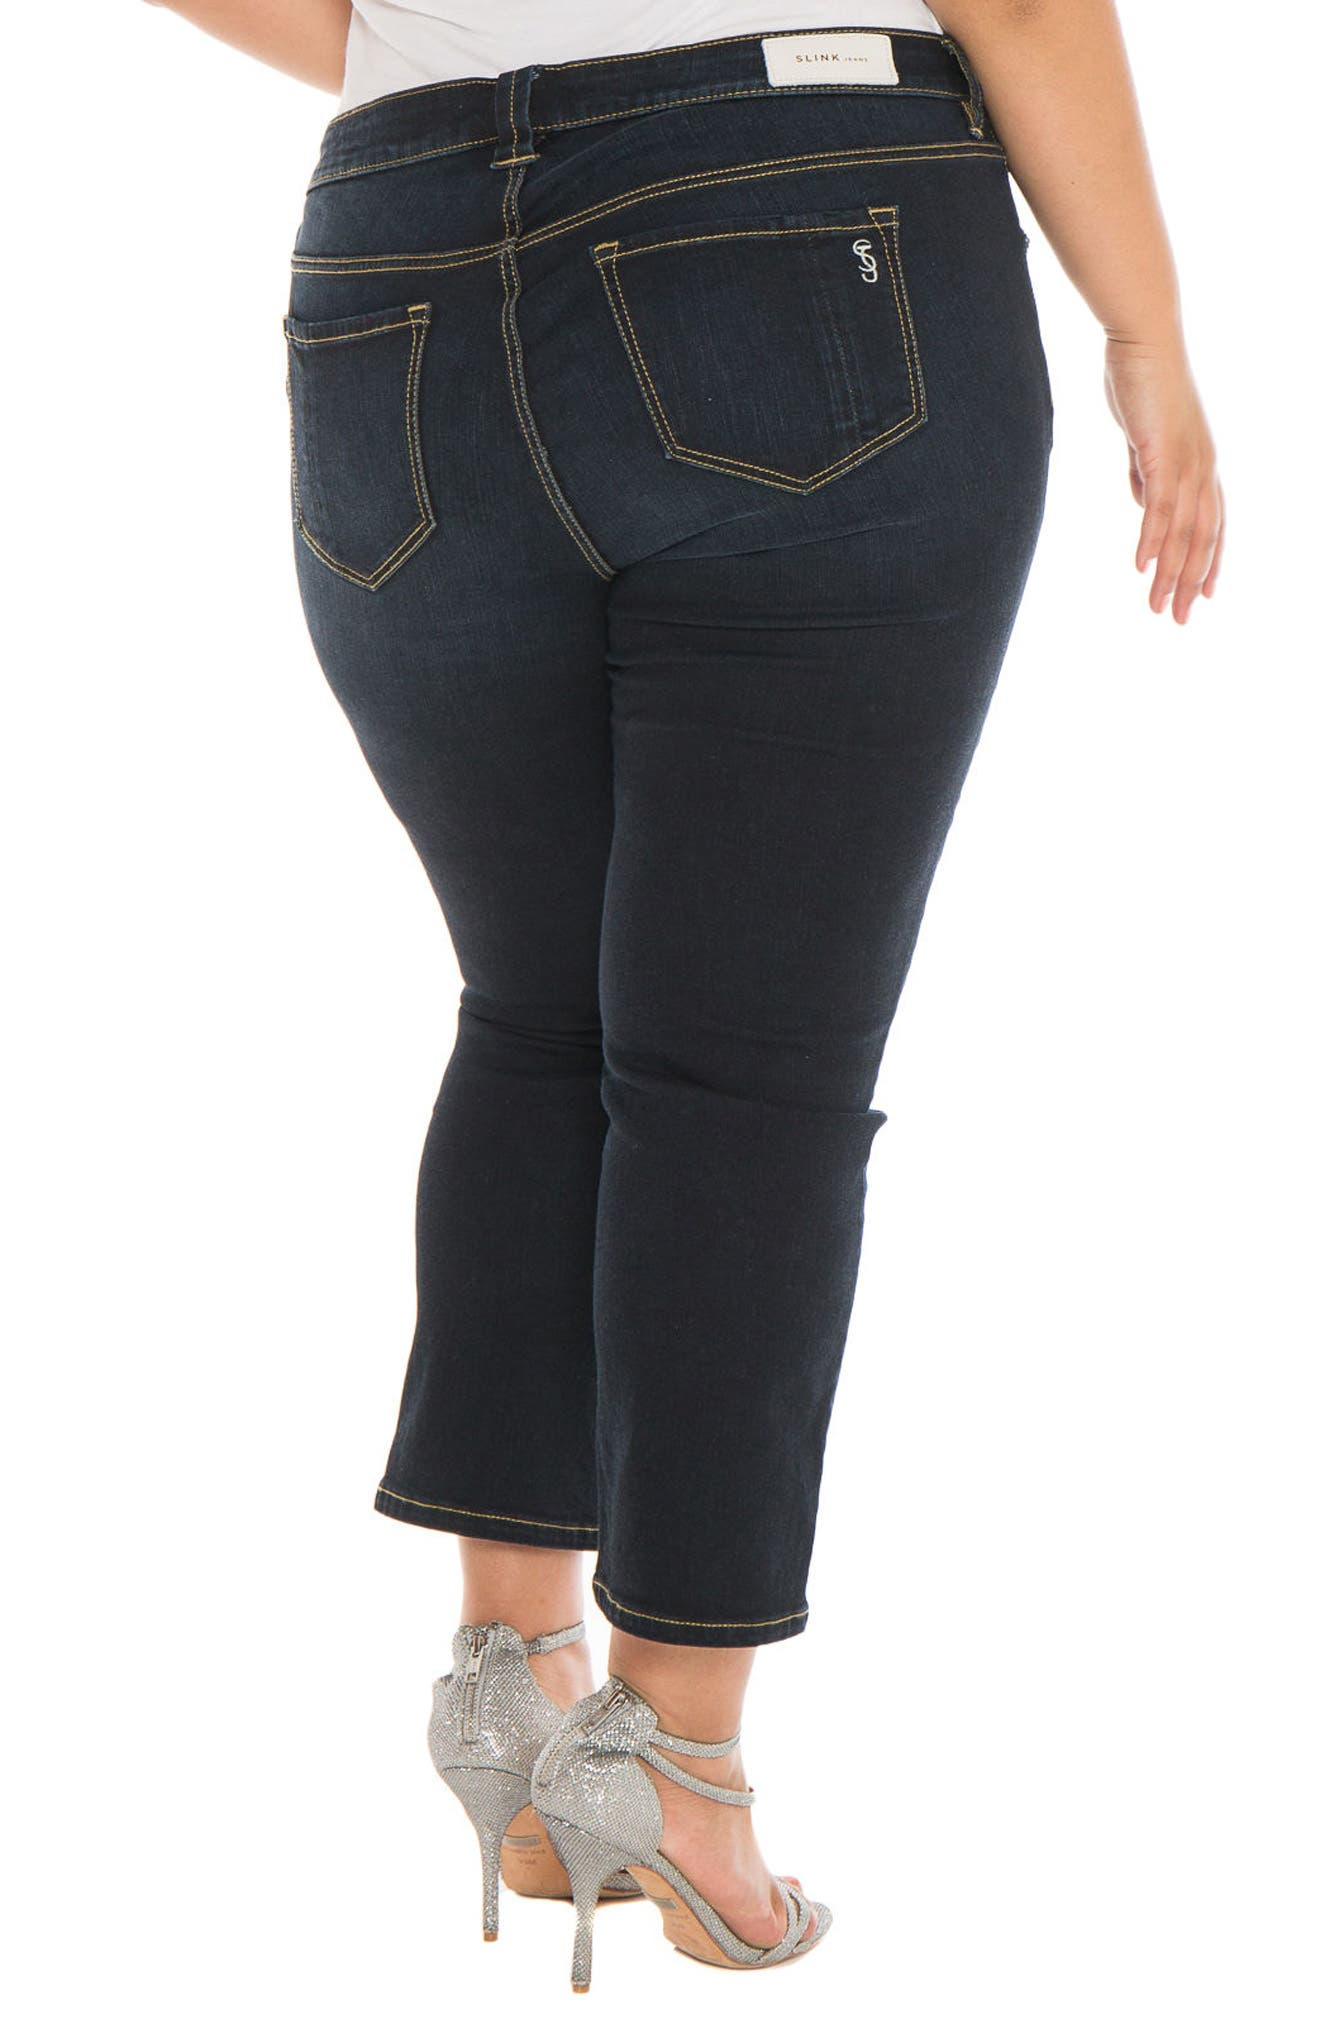 Alternate Image 3  - SLINK Jeans Straight Leg Jeans (Summer) (Plus Size)